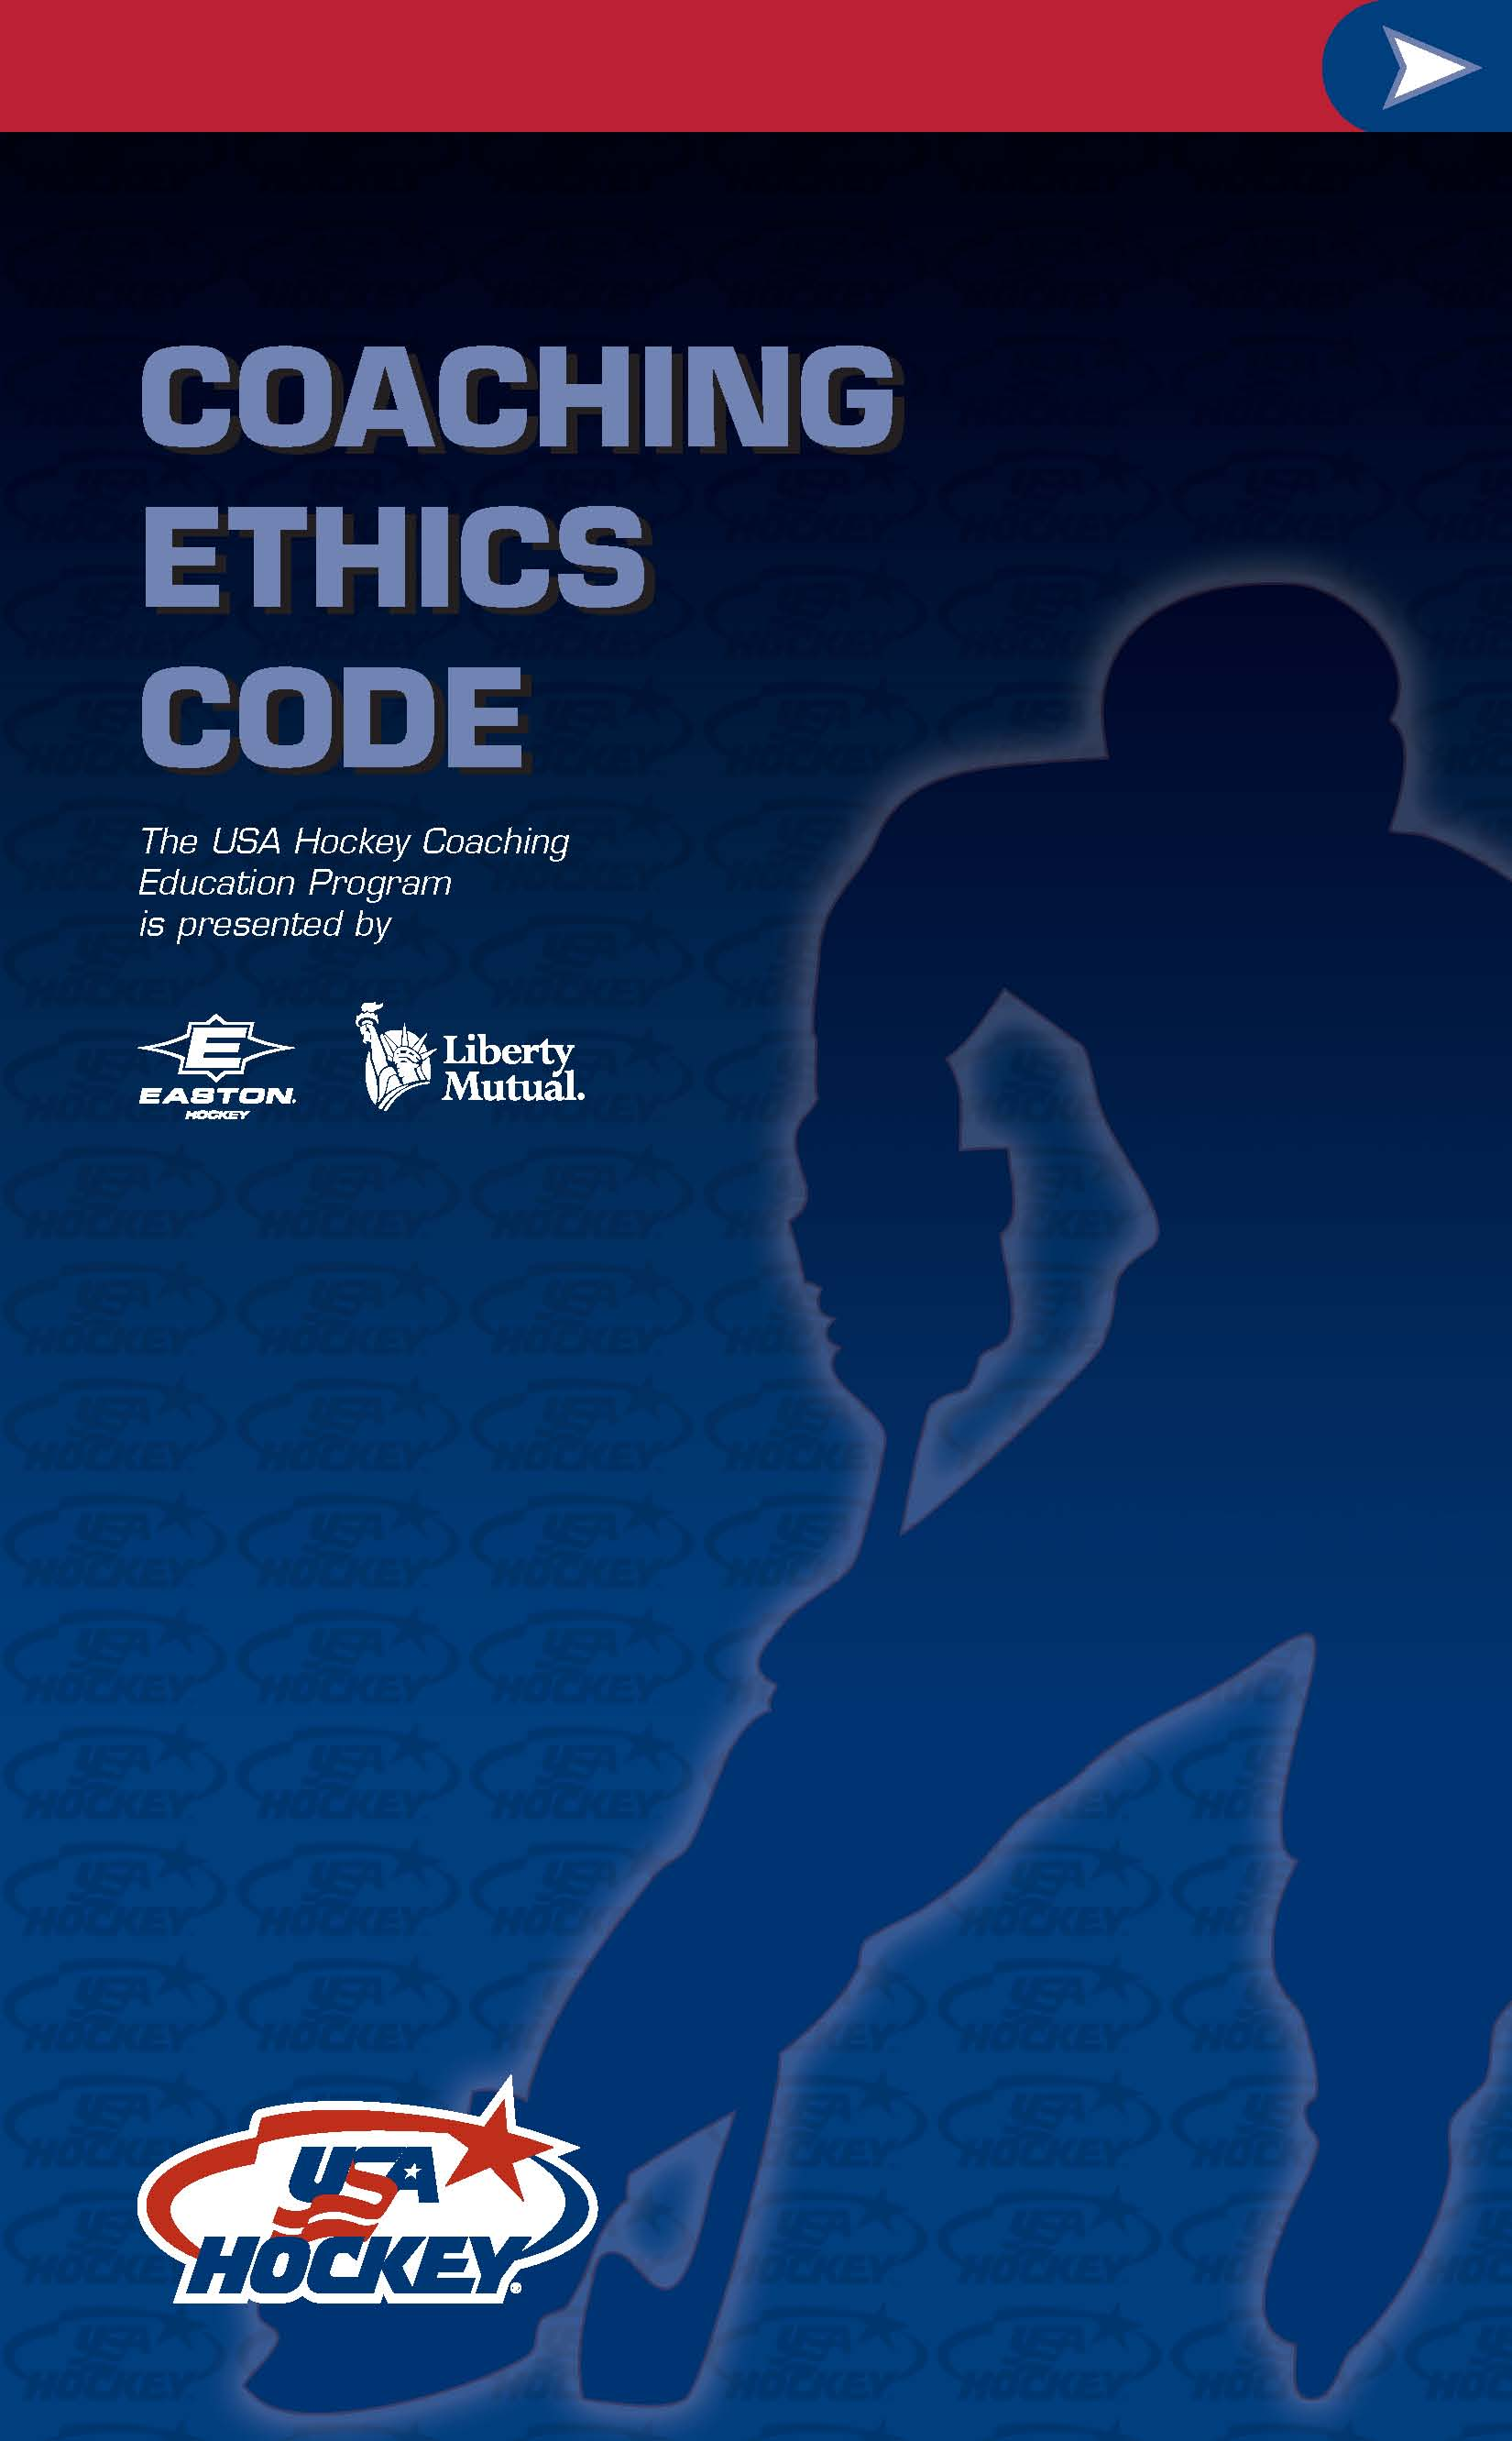 Coaching Ethics Code logo